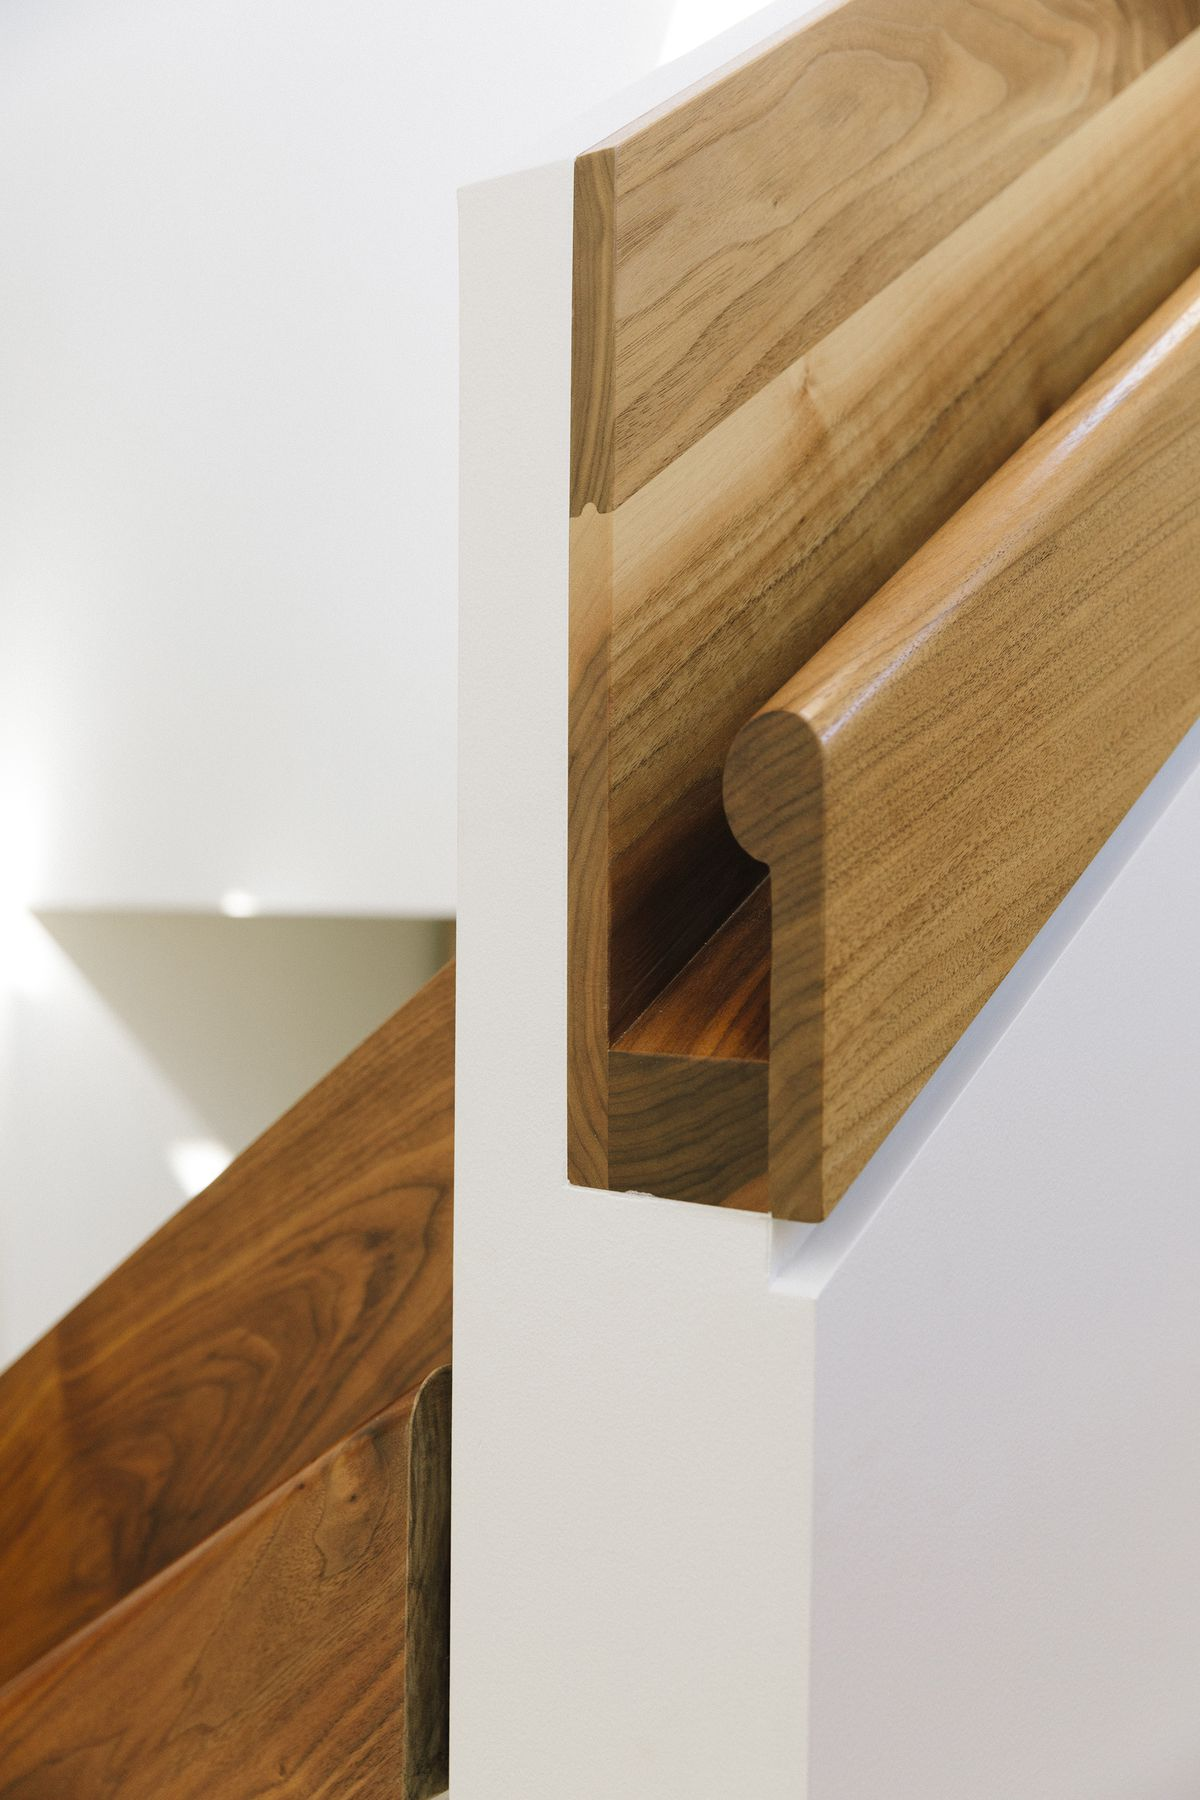 A wooden bumper on a painted white wall.